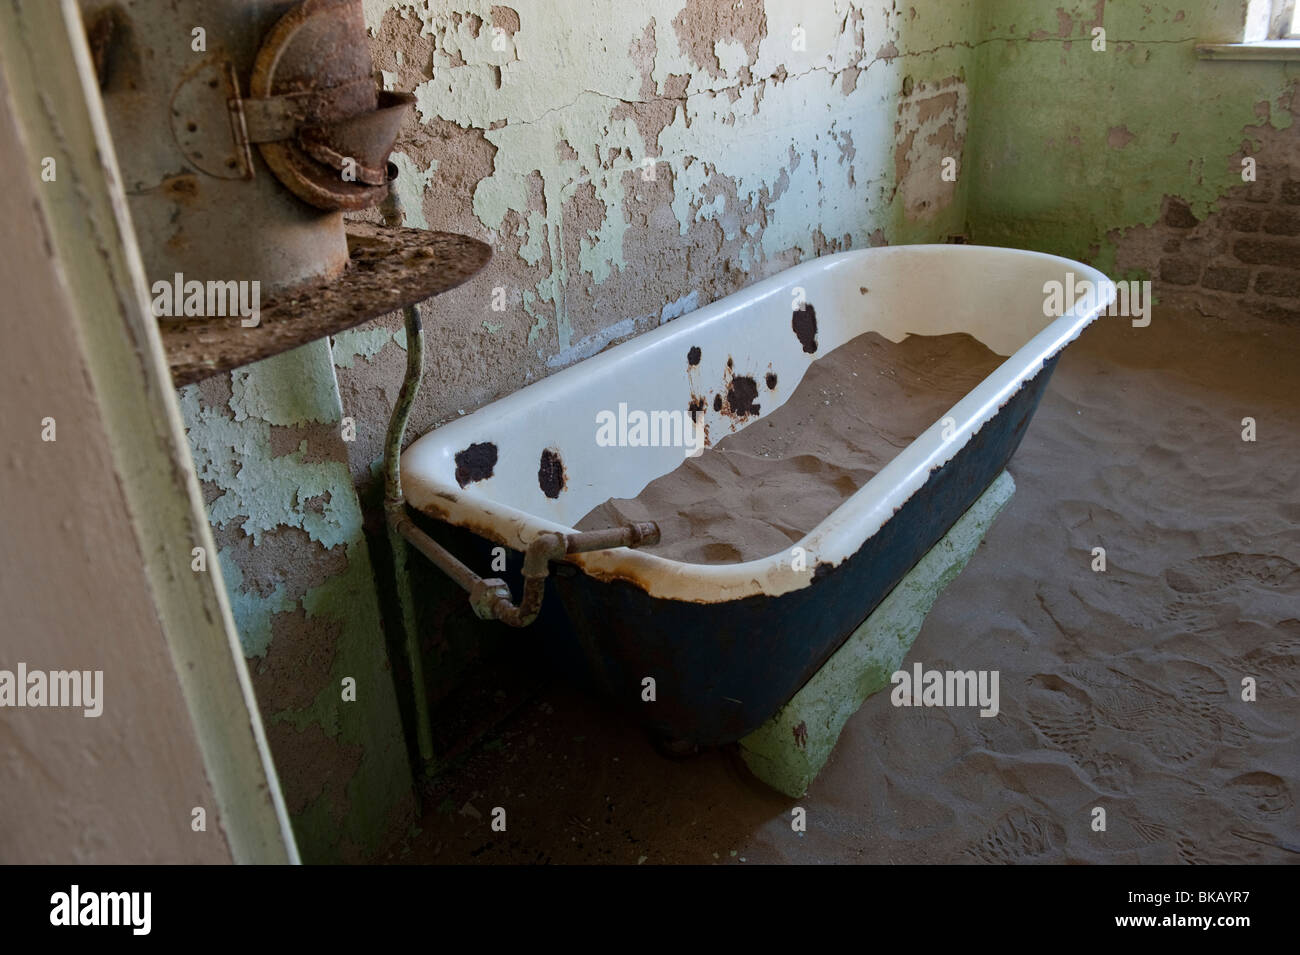 Bathtub Full of Desert Sand in the Architekt or Architects House, Kolmanskop Ghost Town near Luderitz, Namibia - Stock Image